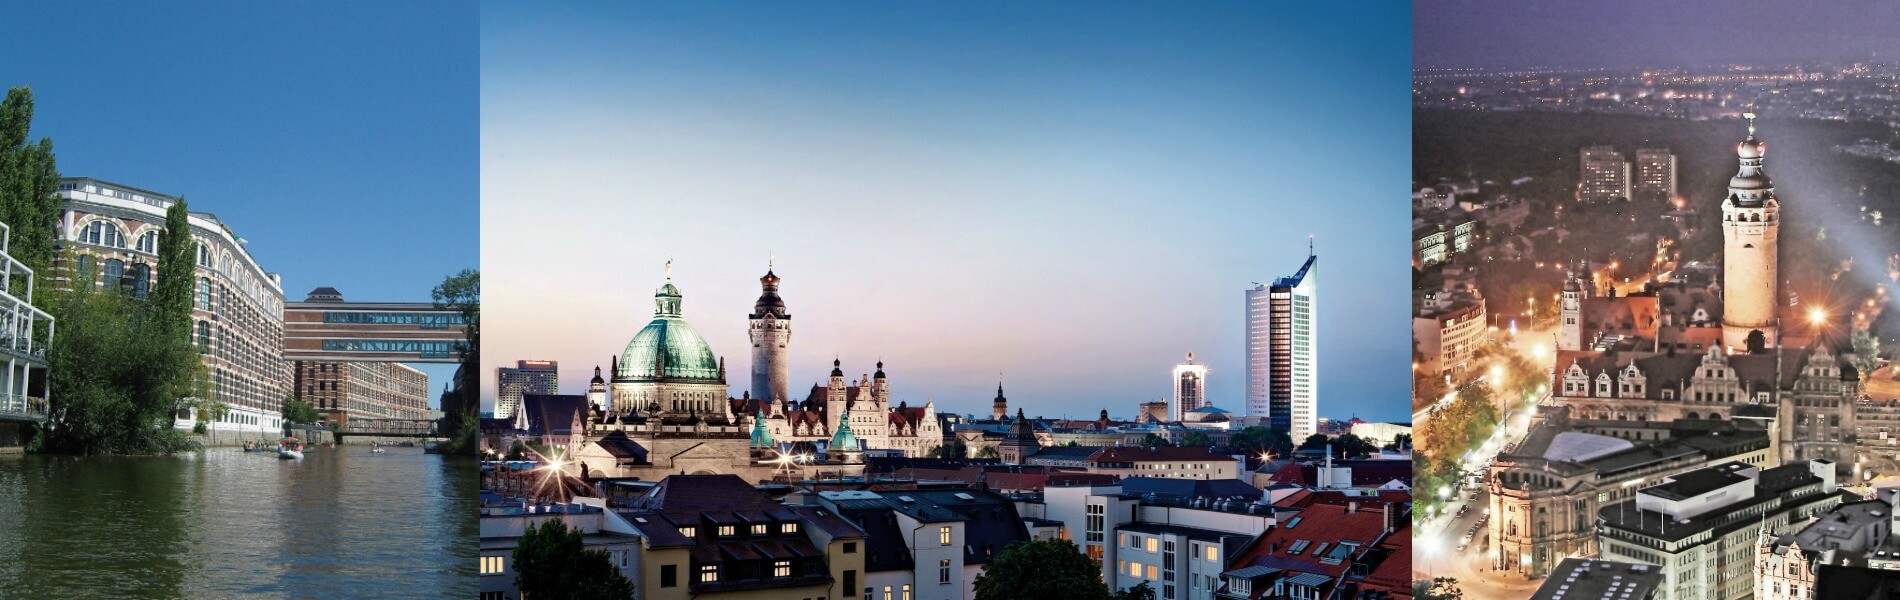 Investment Property in Germany - Leipzig